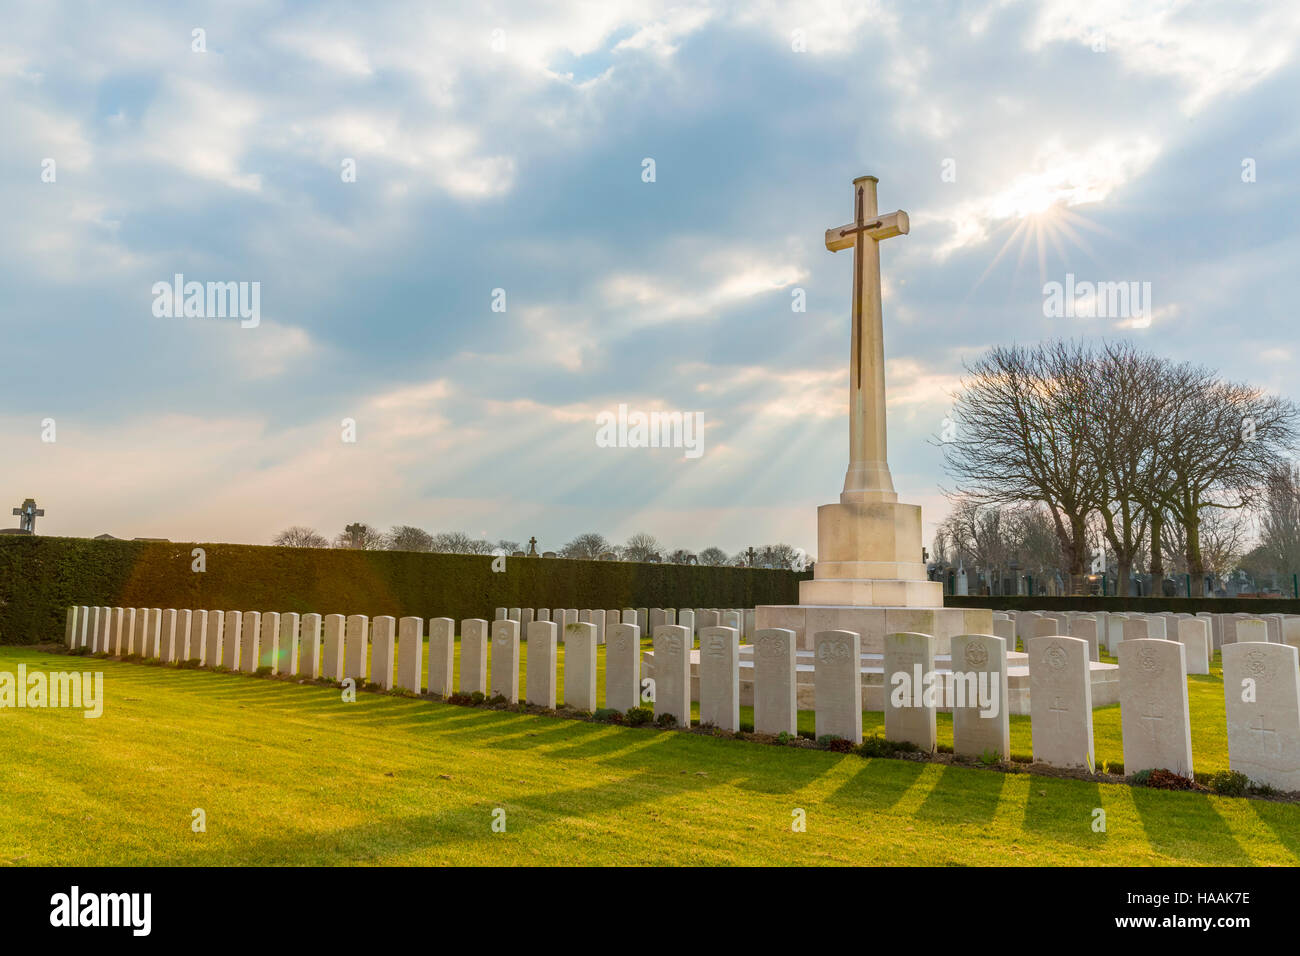 The Commonwealth War Graves Commission (CWGC) DUNKIRK MEMORIAL CEMETARY, Dunkerque, France - Stock Image